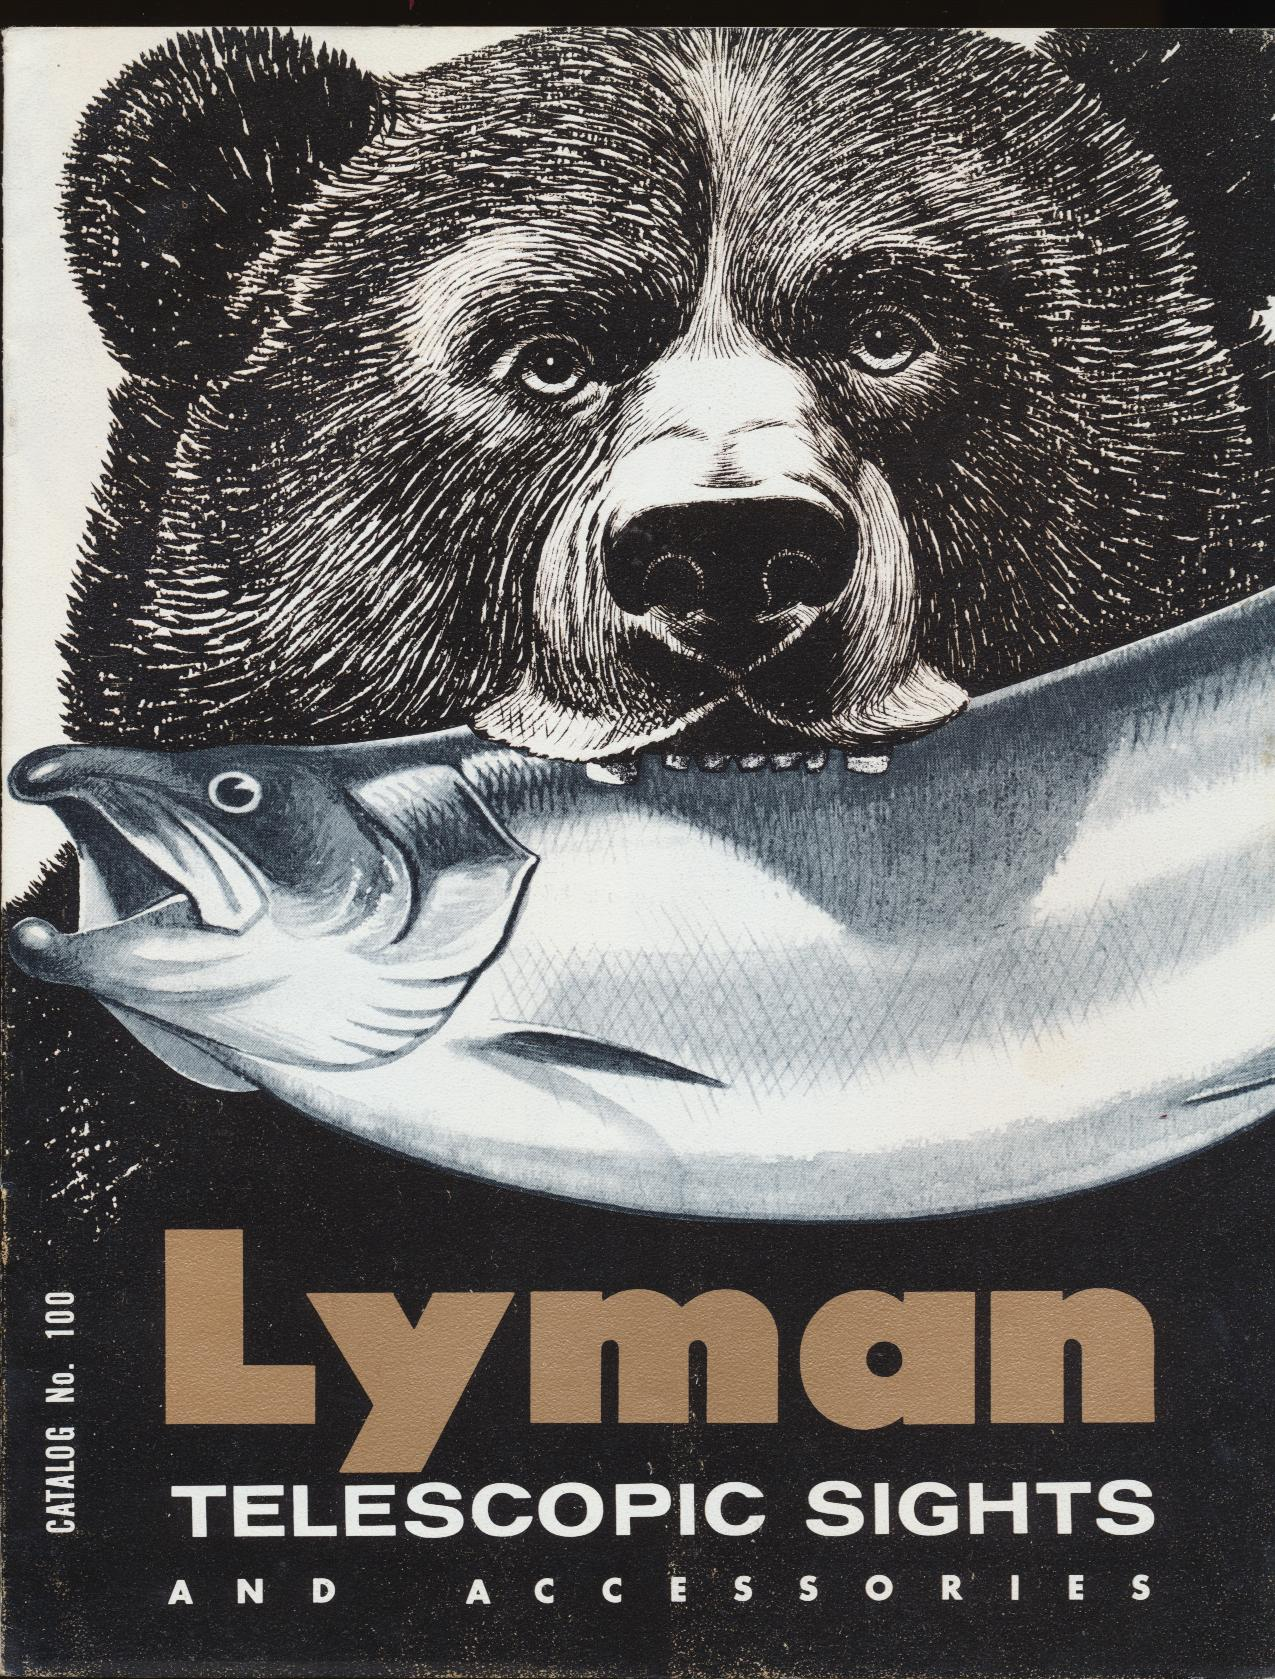 1969 Lyman Telescopic Sights & Accessories Dealer Trade Catalog